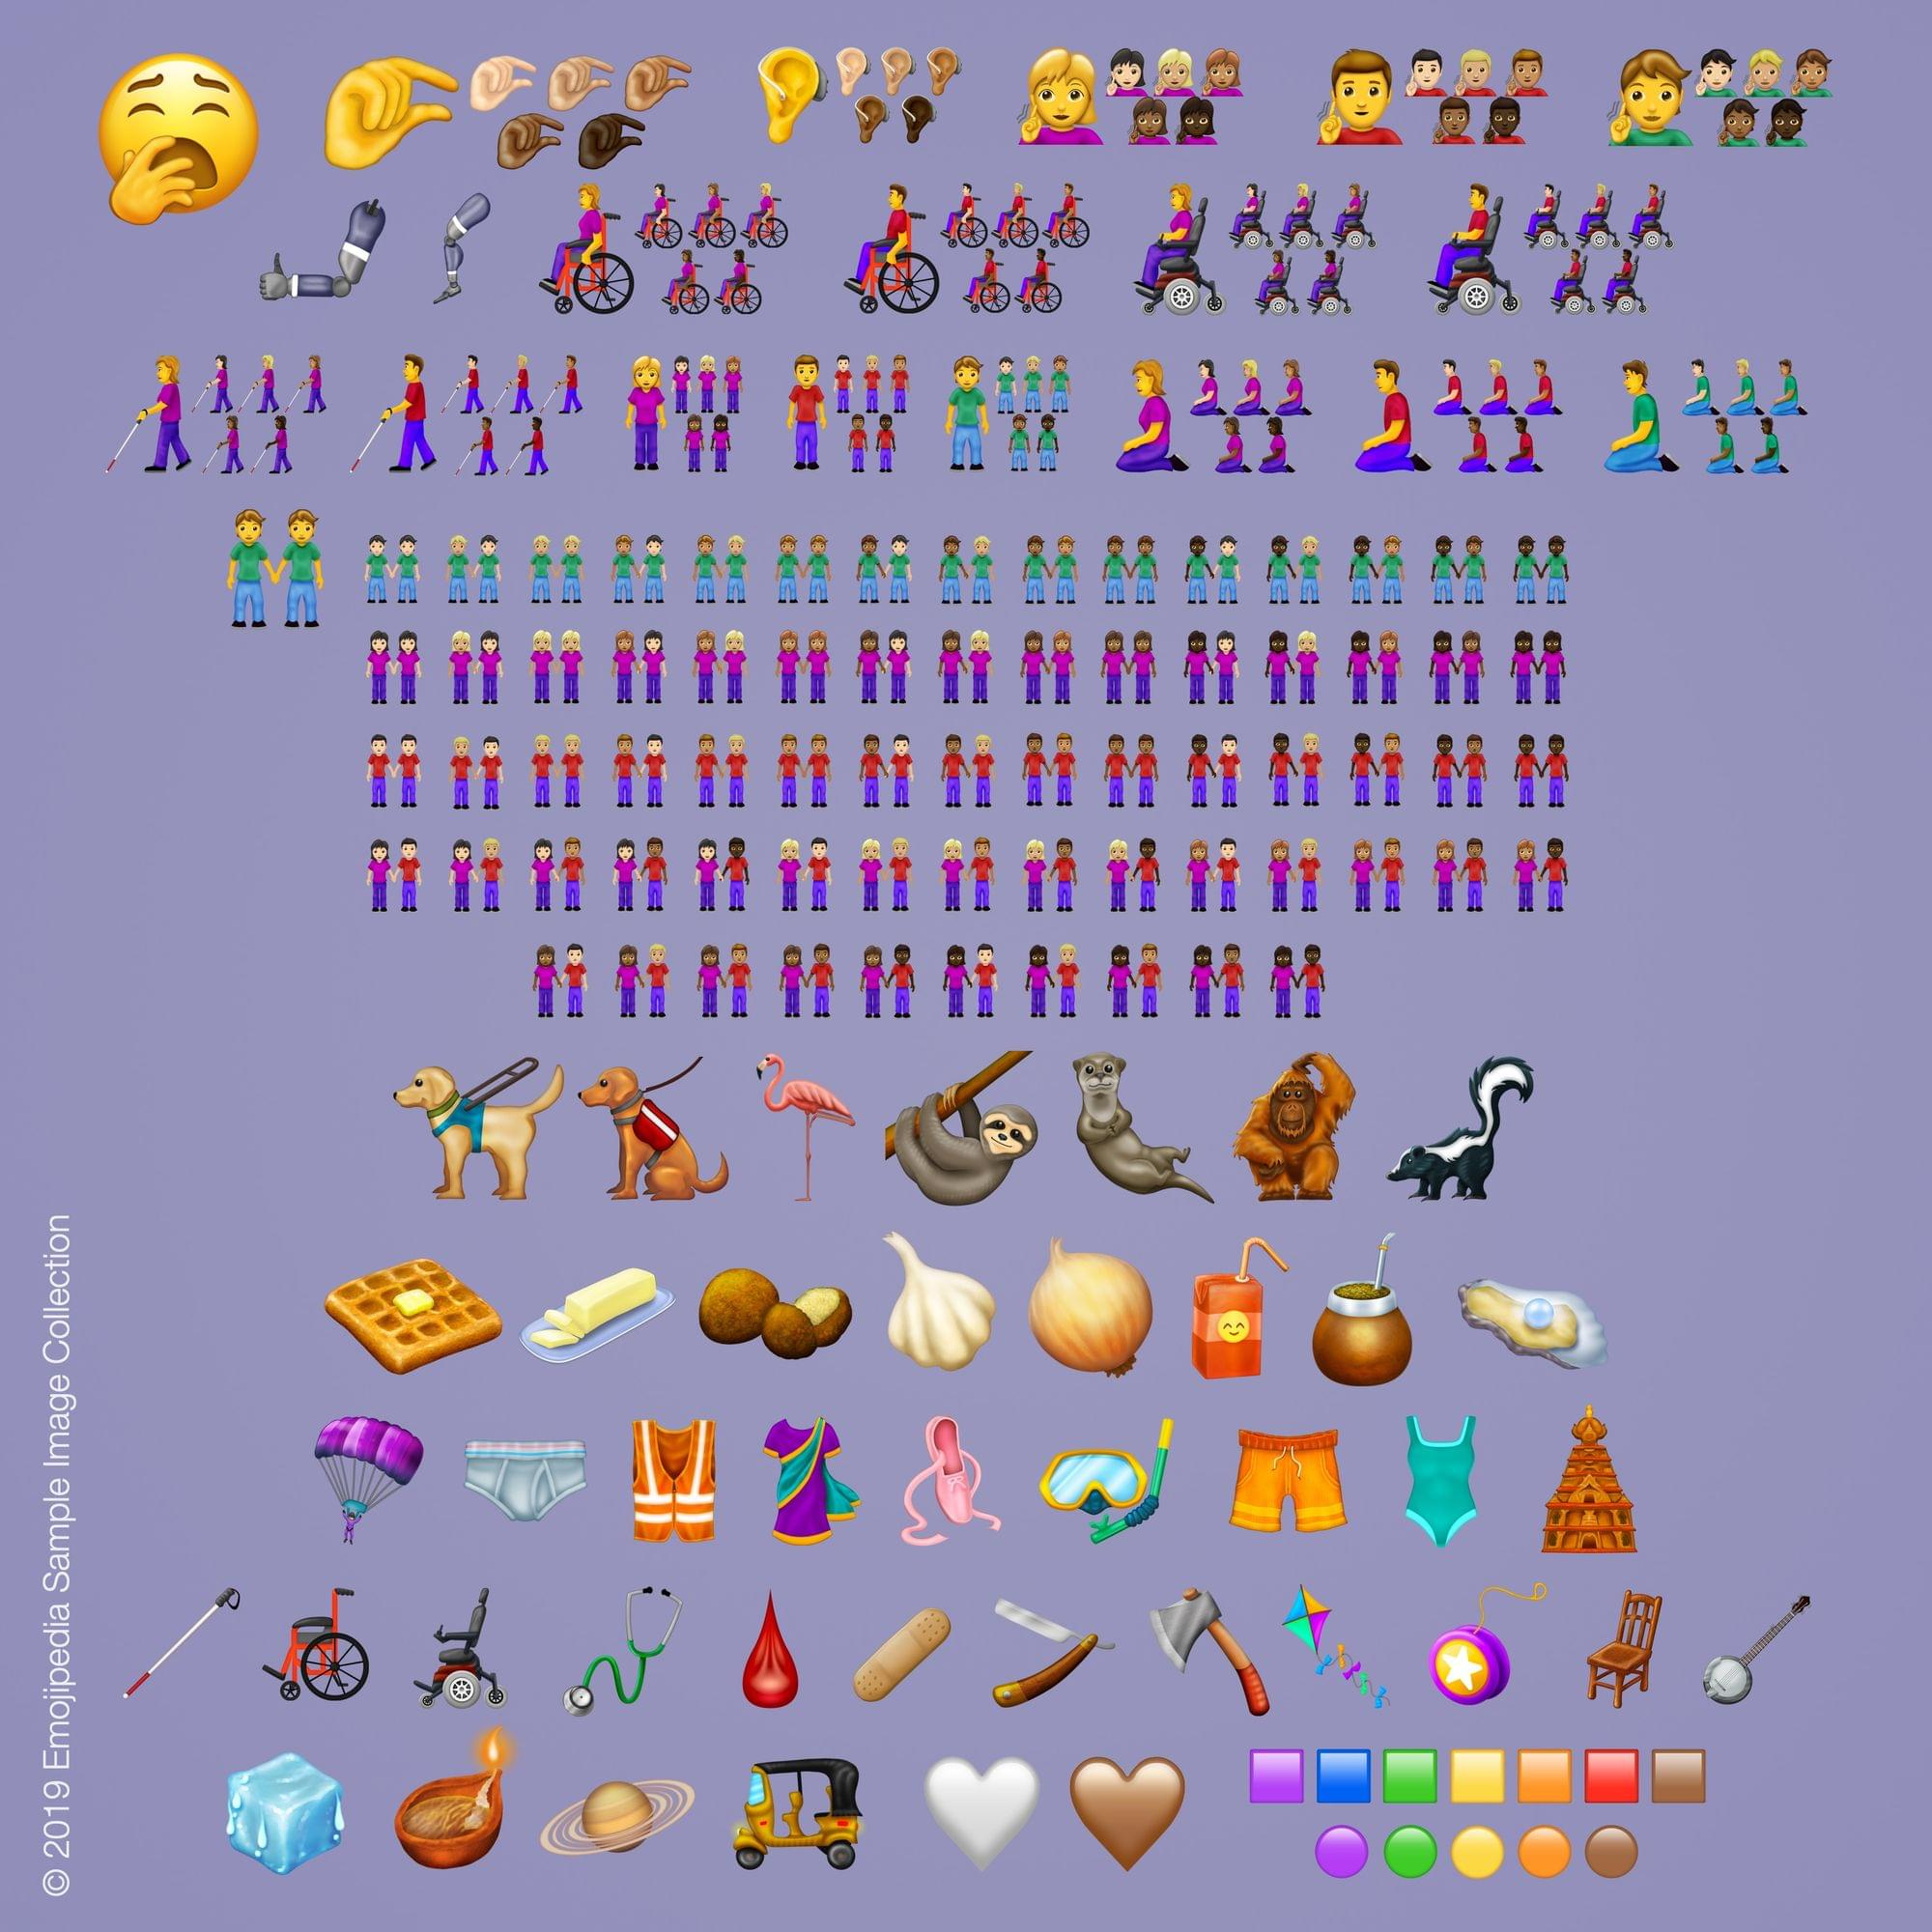 The New Emojis Are Here! The New Emojis Are Here!